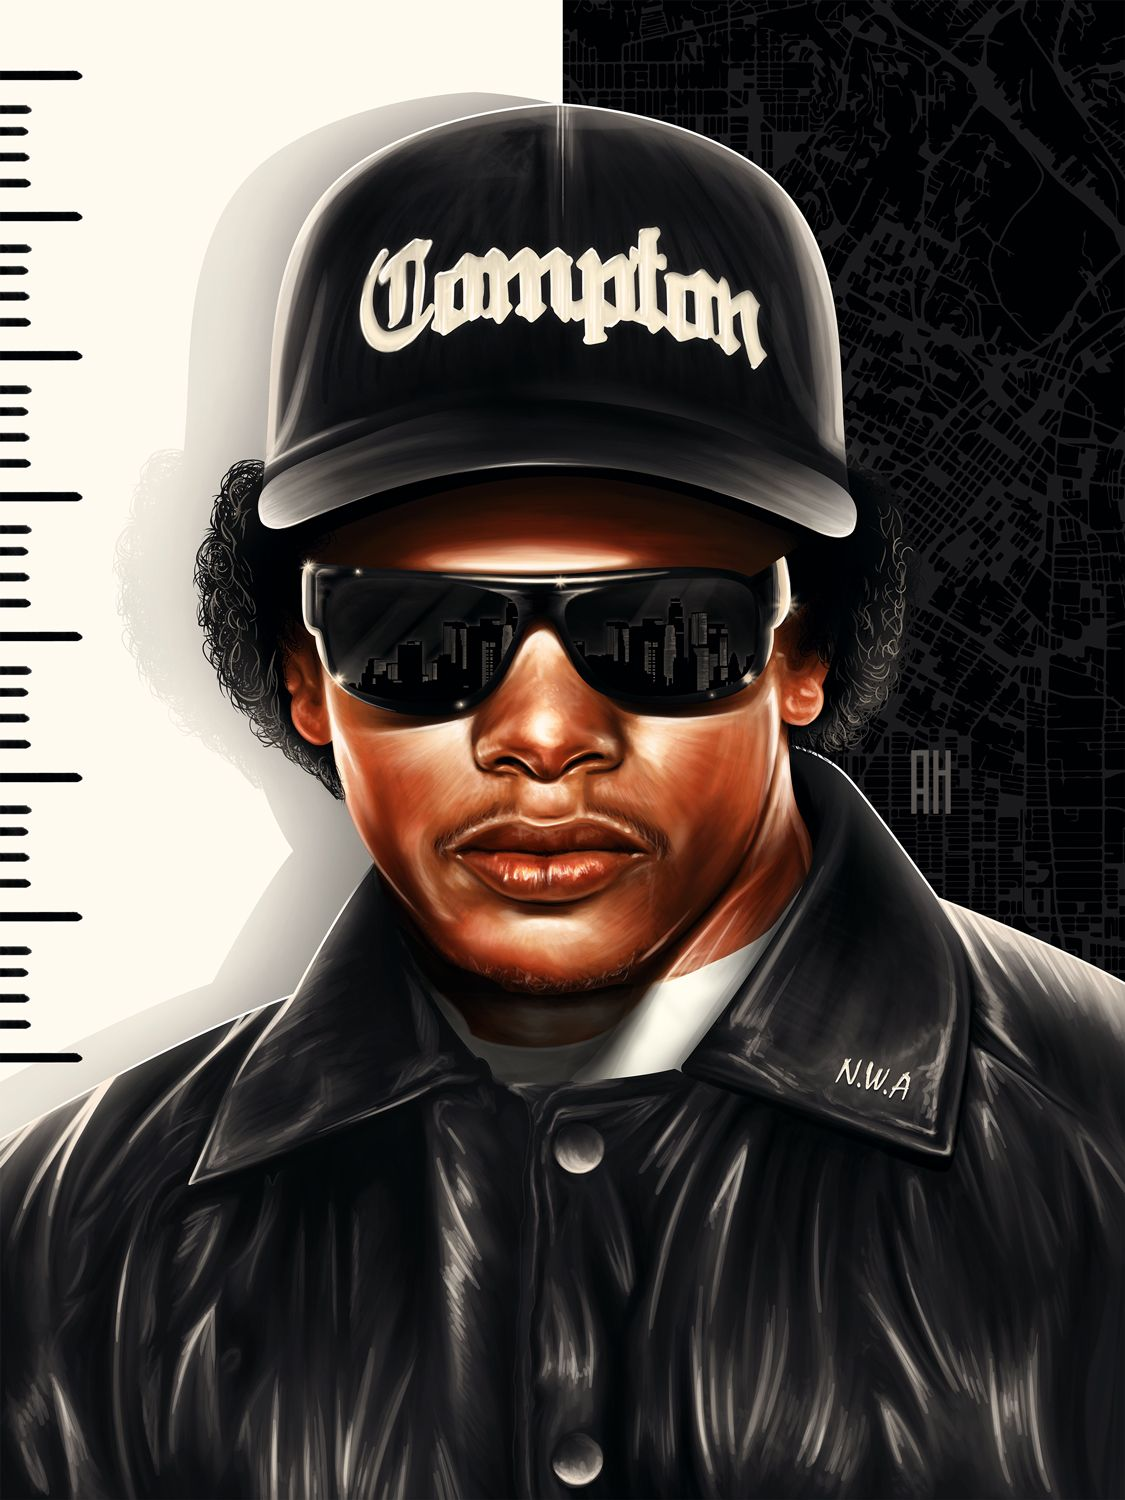 Eazy E Hip Hop Artwork Hip Hop Art Celebrity Artwork